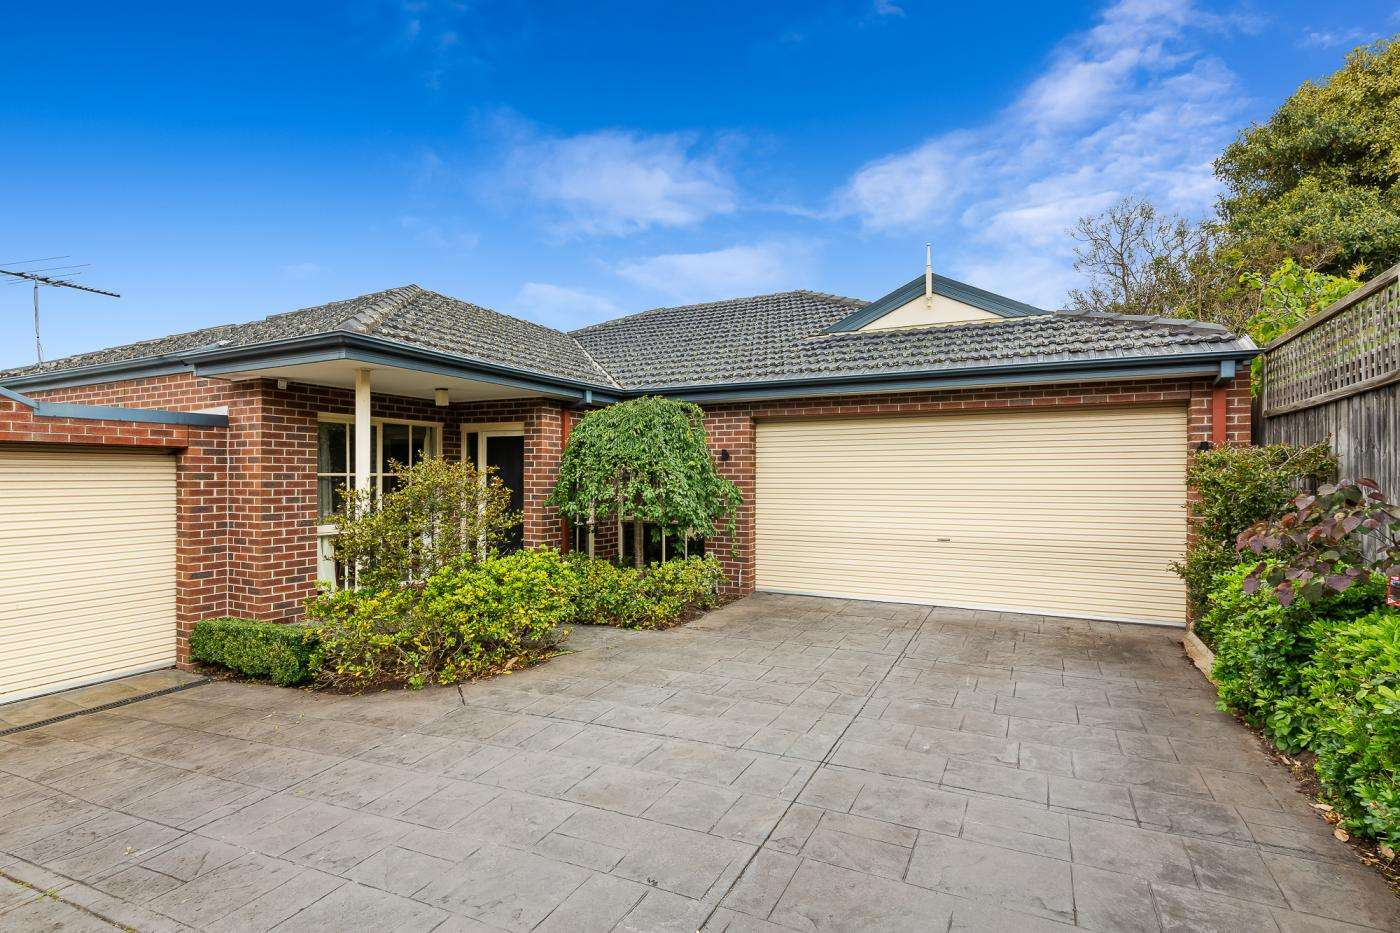 Main view of Homely house listing, 2/59 Through Road, Camberwell, VIC 3124